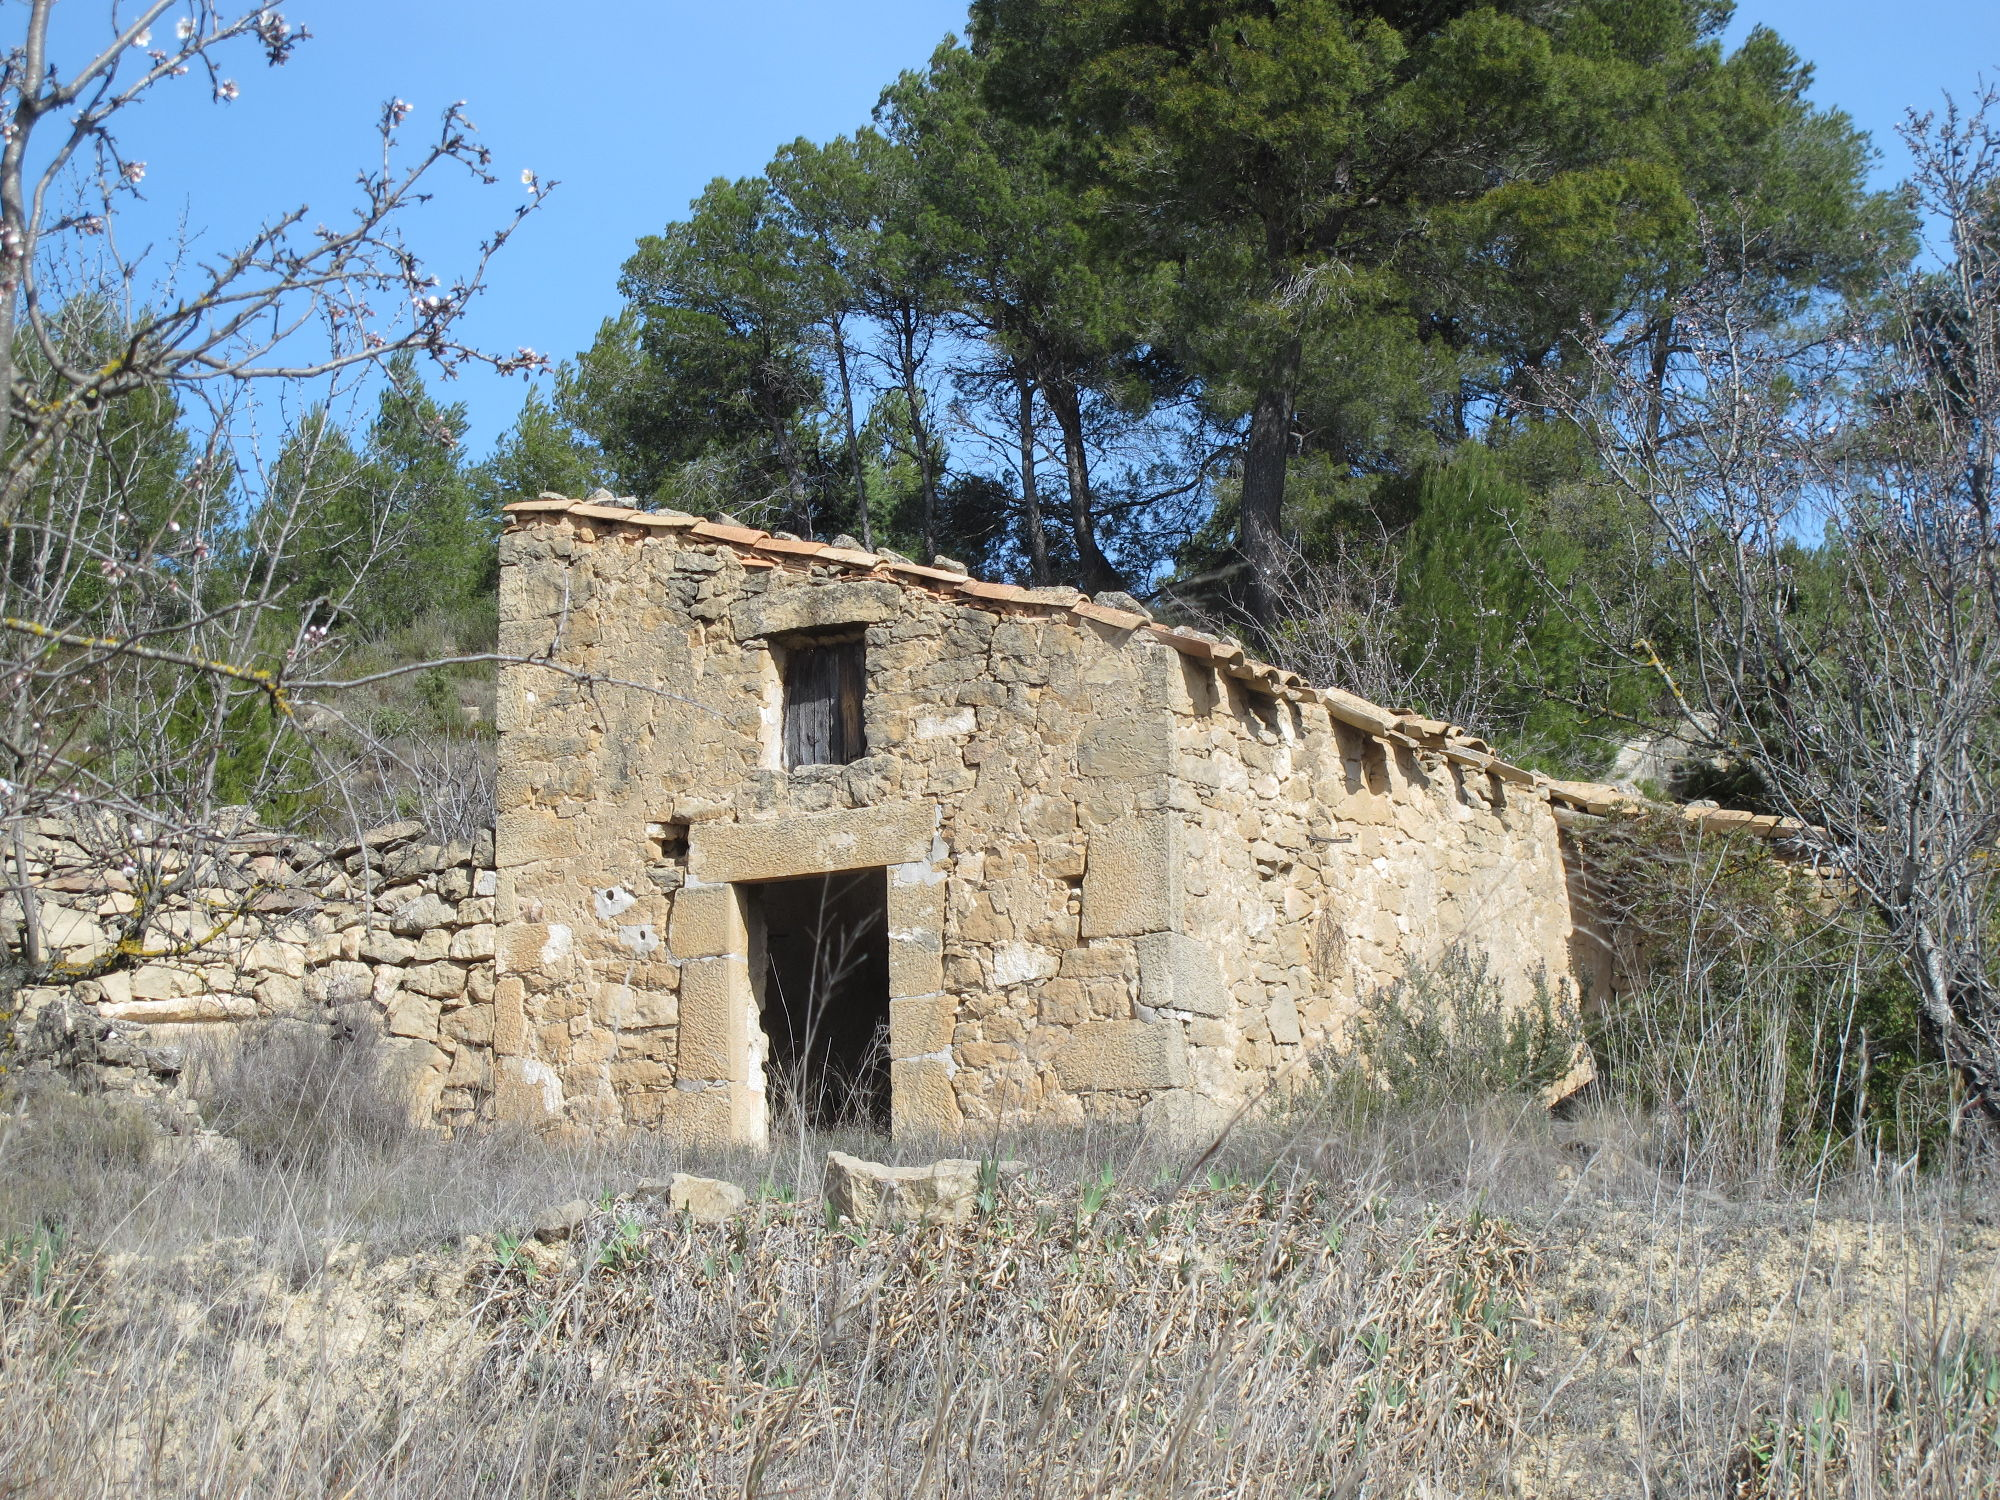 4 Rooms, Land, For sale, Barranc del Vall de la Conilla, 2 Bathrooms, Listing ID 1002, Caseres, Tarragona, Spain,